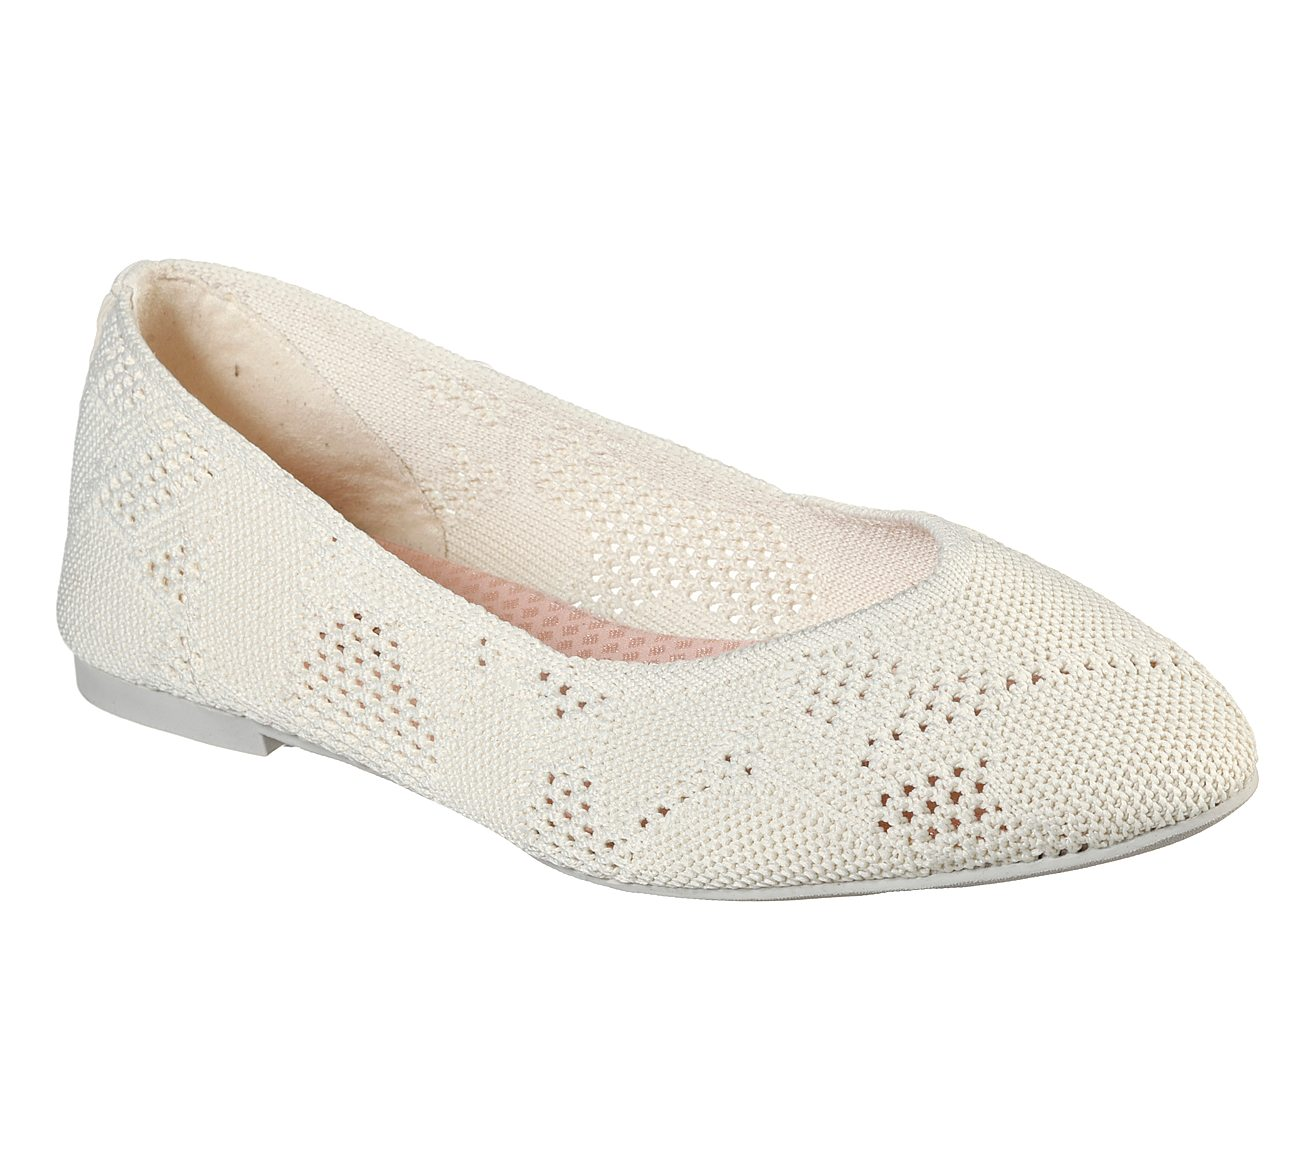 Buy Skechers Cleo Knitty City Modern Comfort Shoes